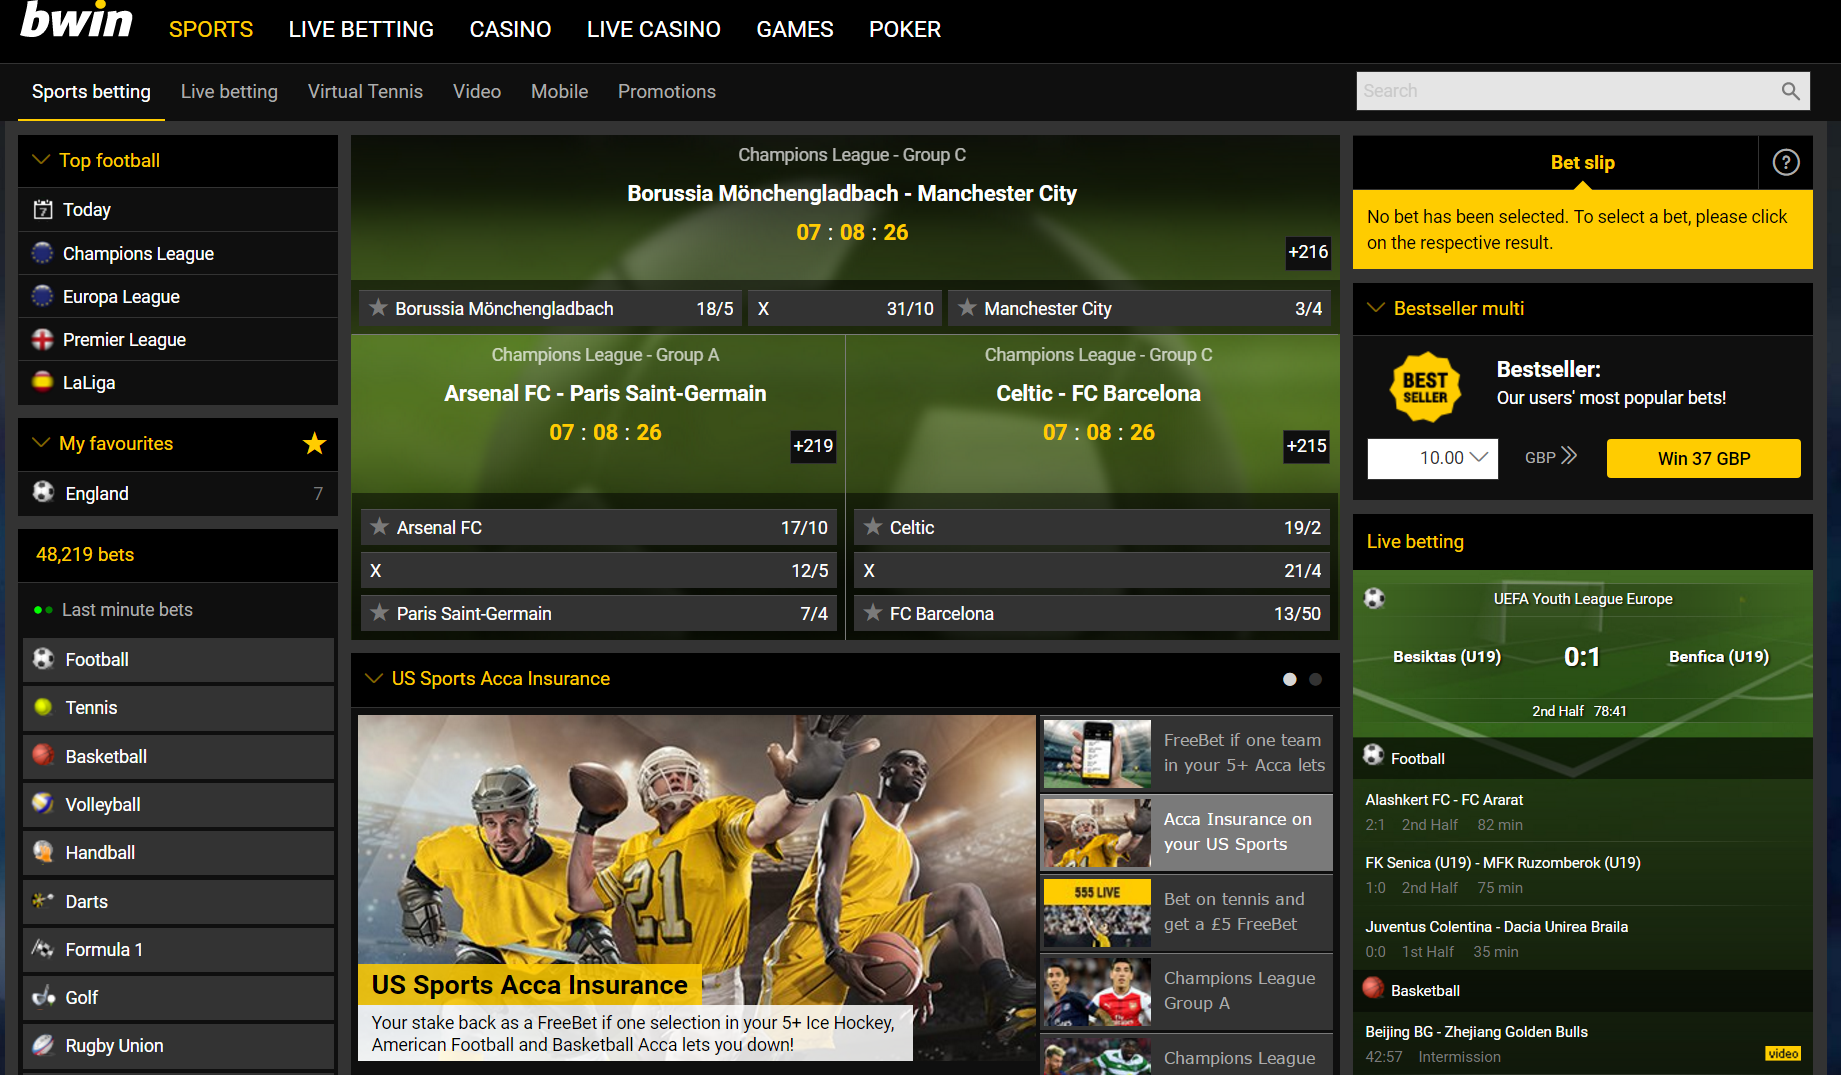 Bwin betting offer